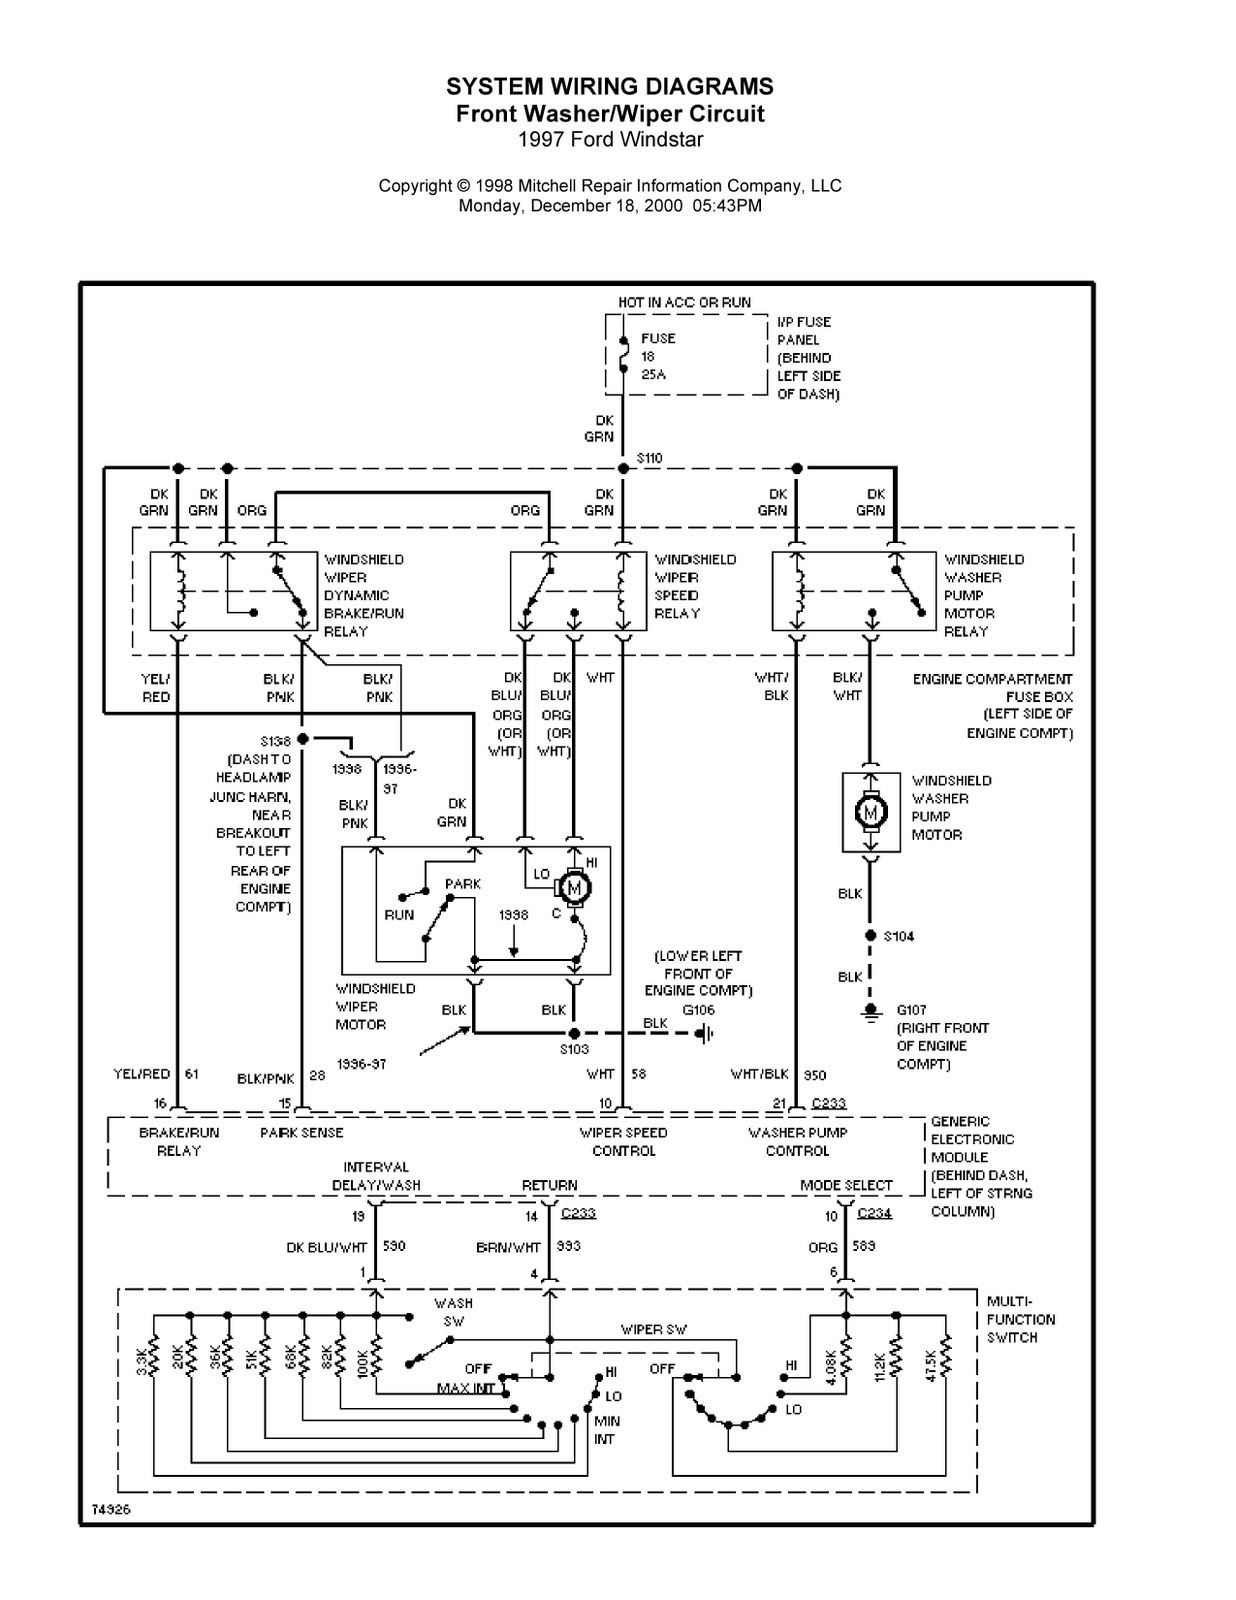 0051 1997 ford windstar complete system wiring diagrams wiring  at alyssarenee.co